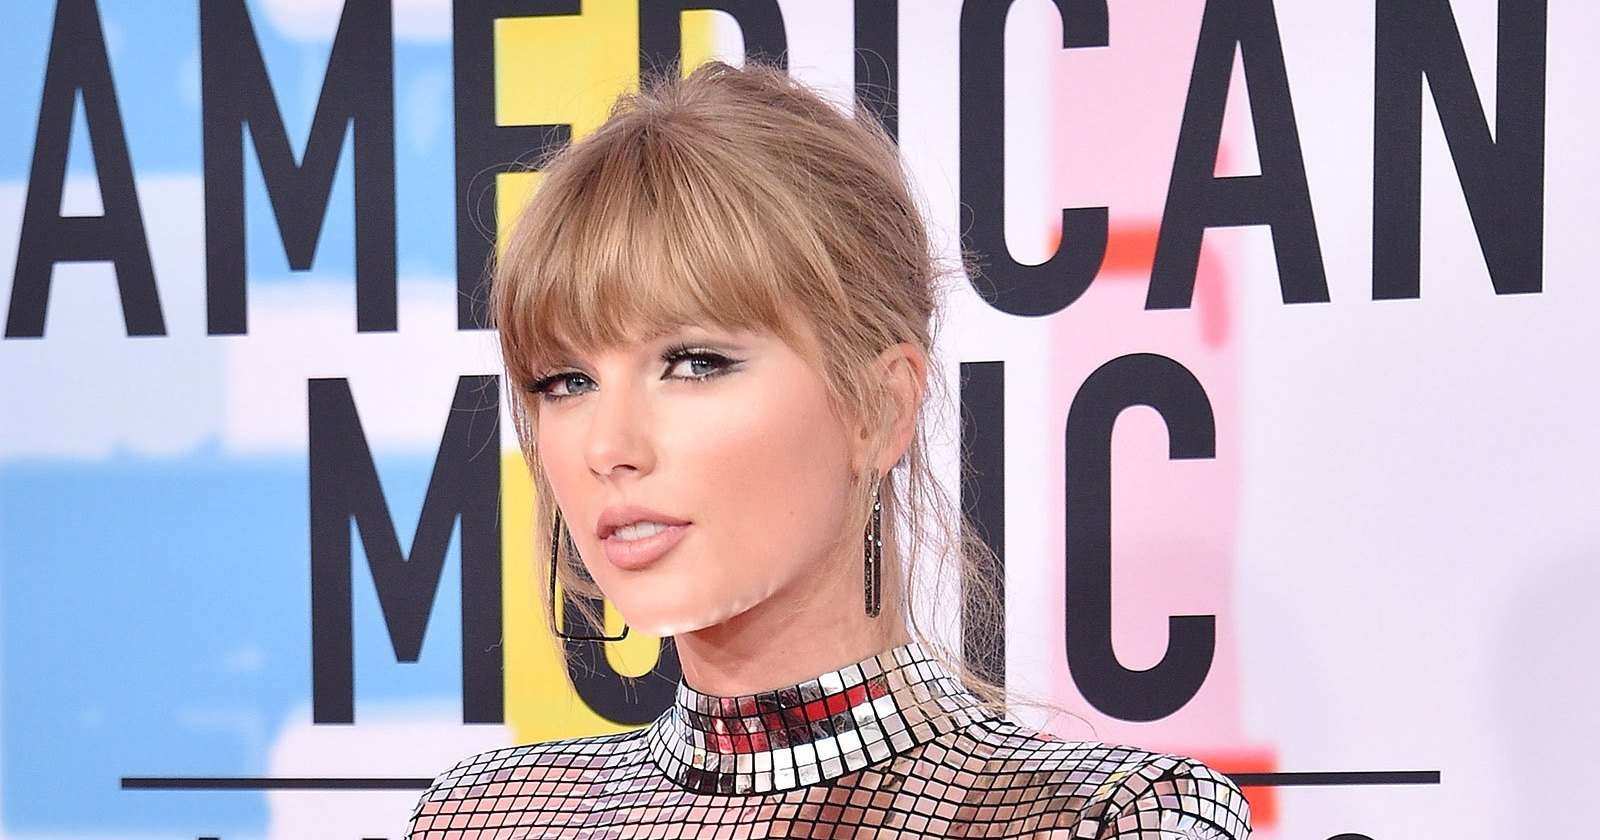 Taylor Swift: These Songs 'Healed My Heart After Bad Breakups'